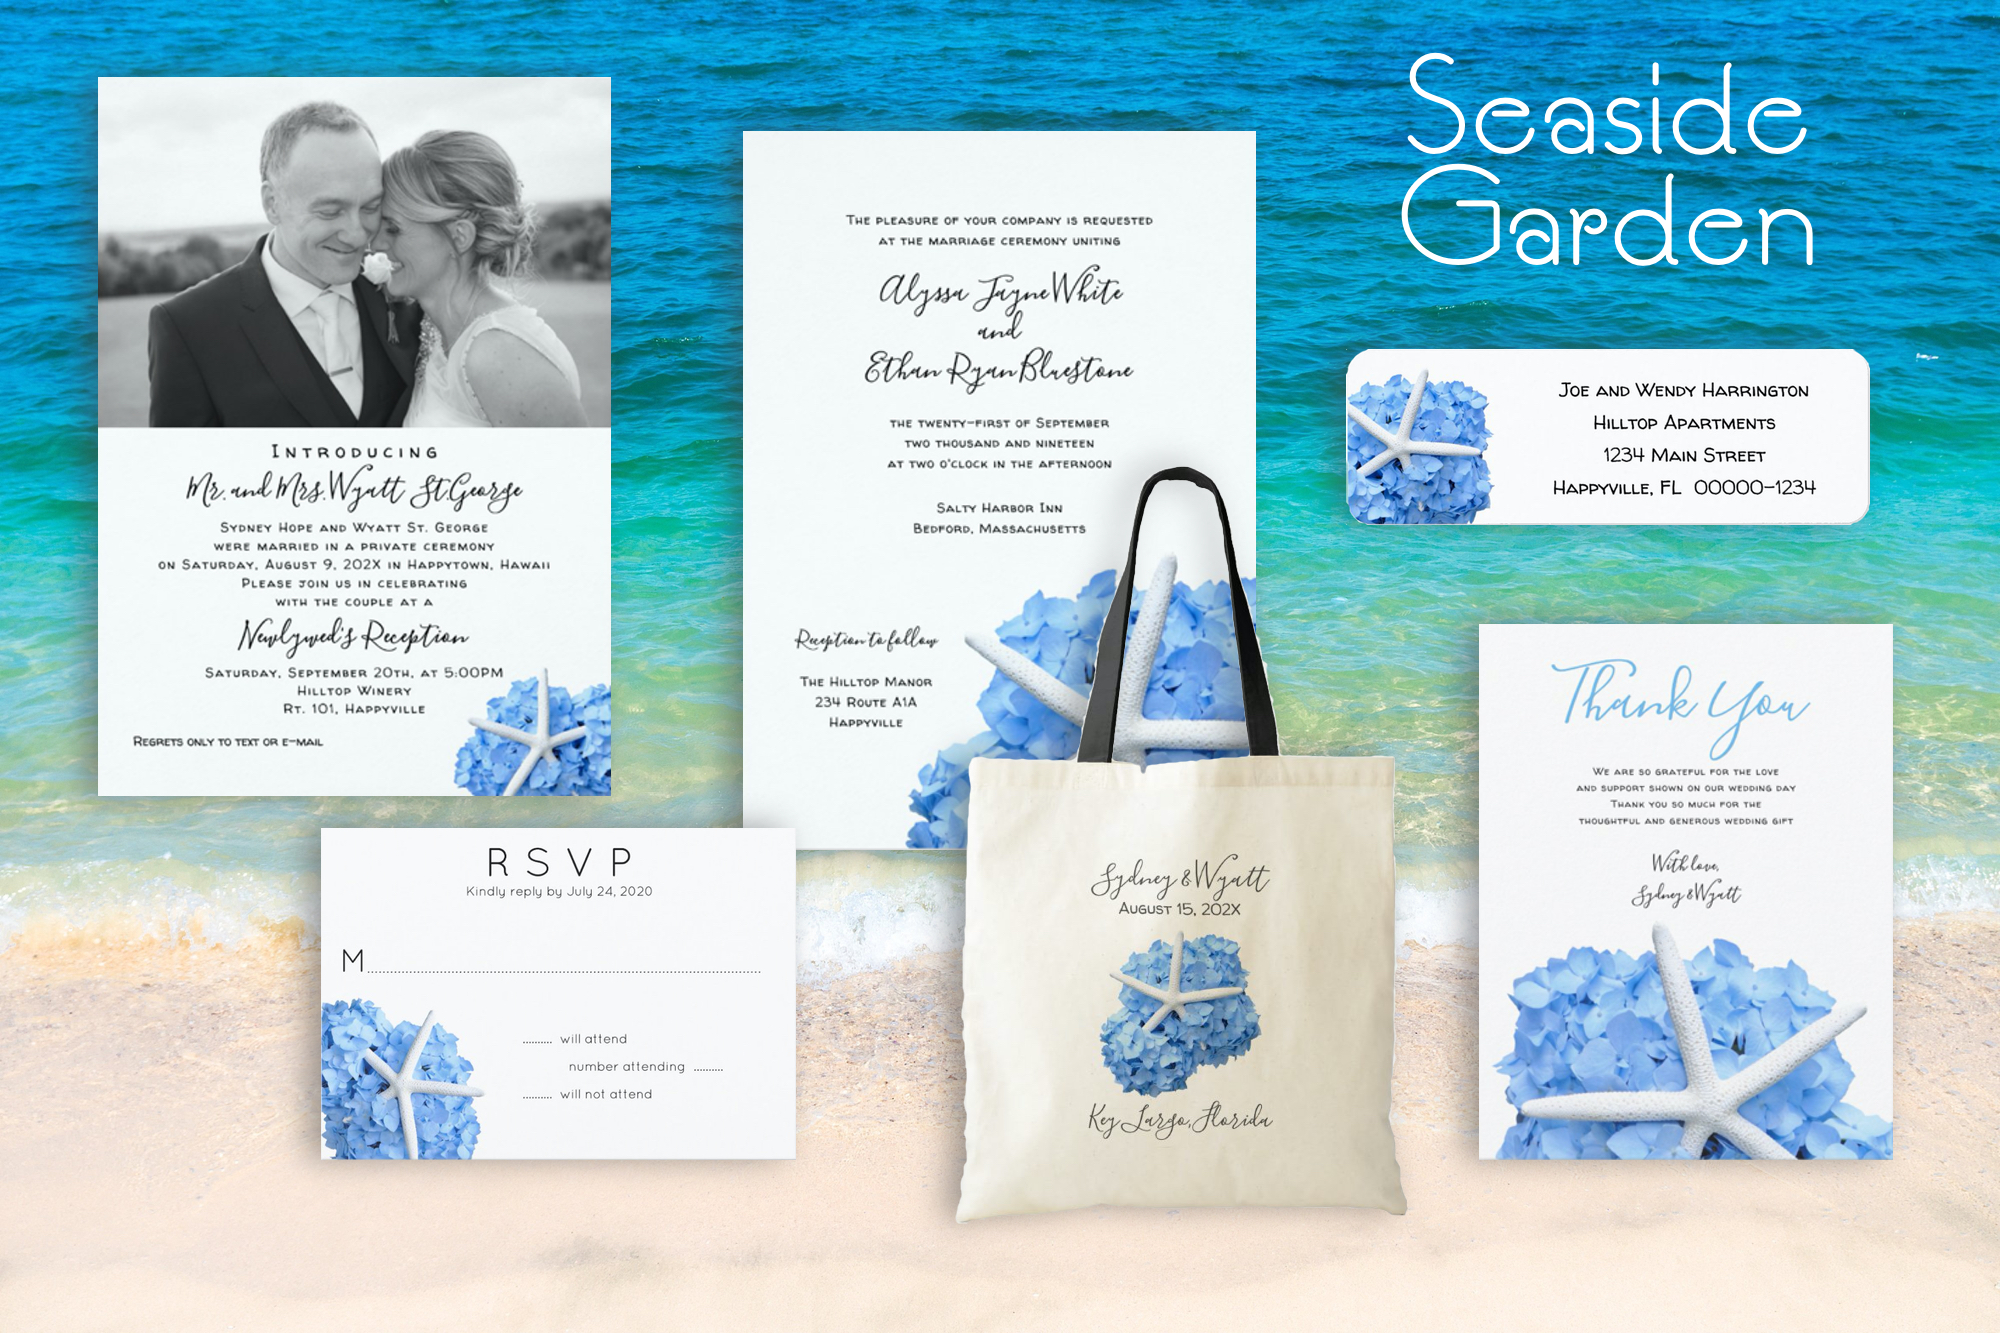 Seaside Garden wedding stationery set with starfish and flowers. Blue hydrangea invitations, bags, rsvp labels and more